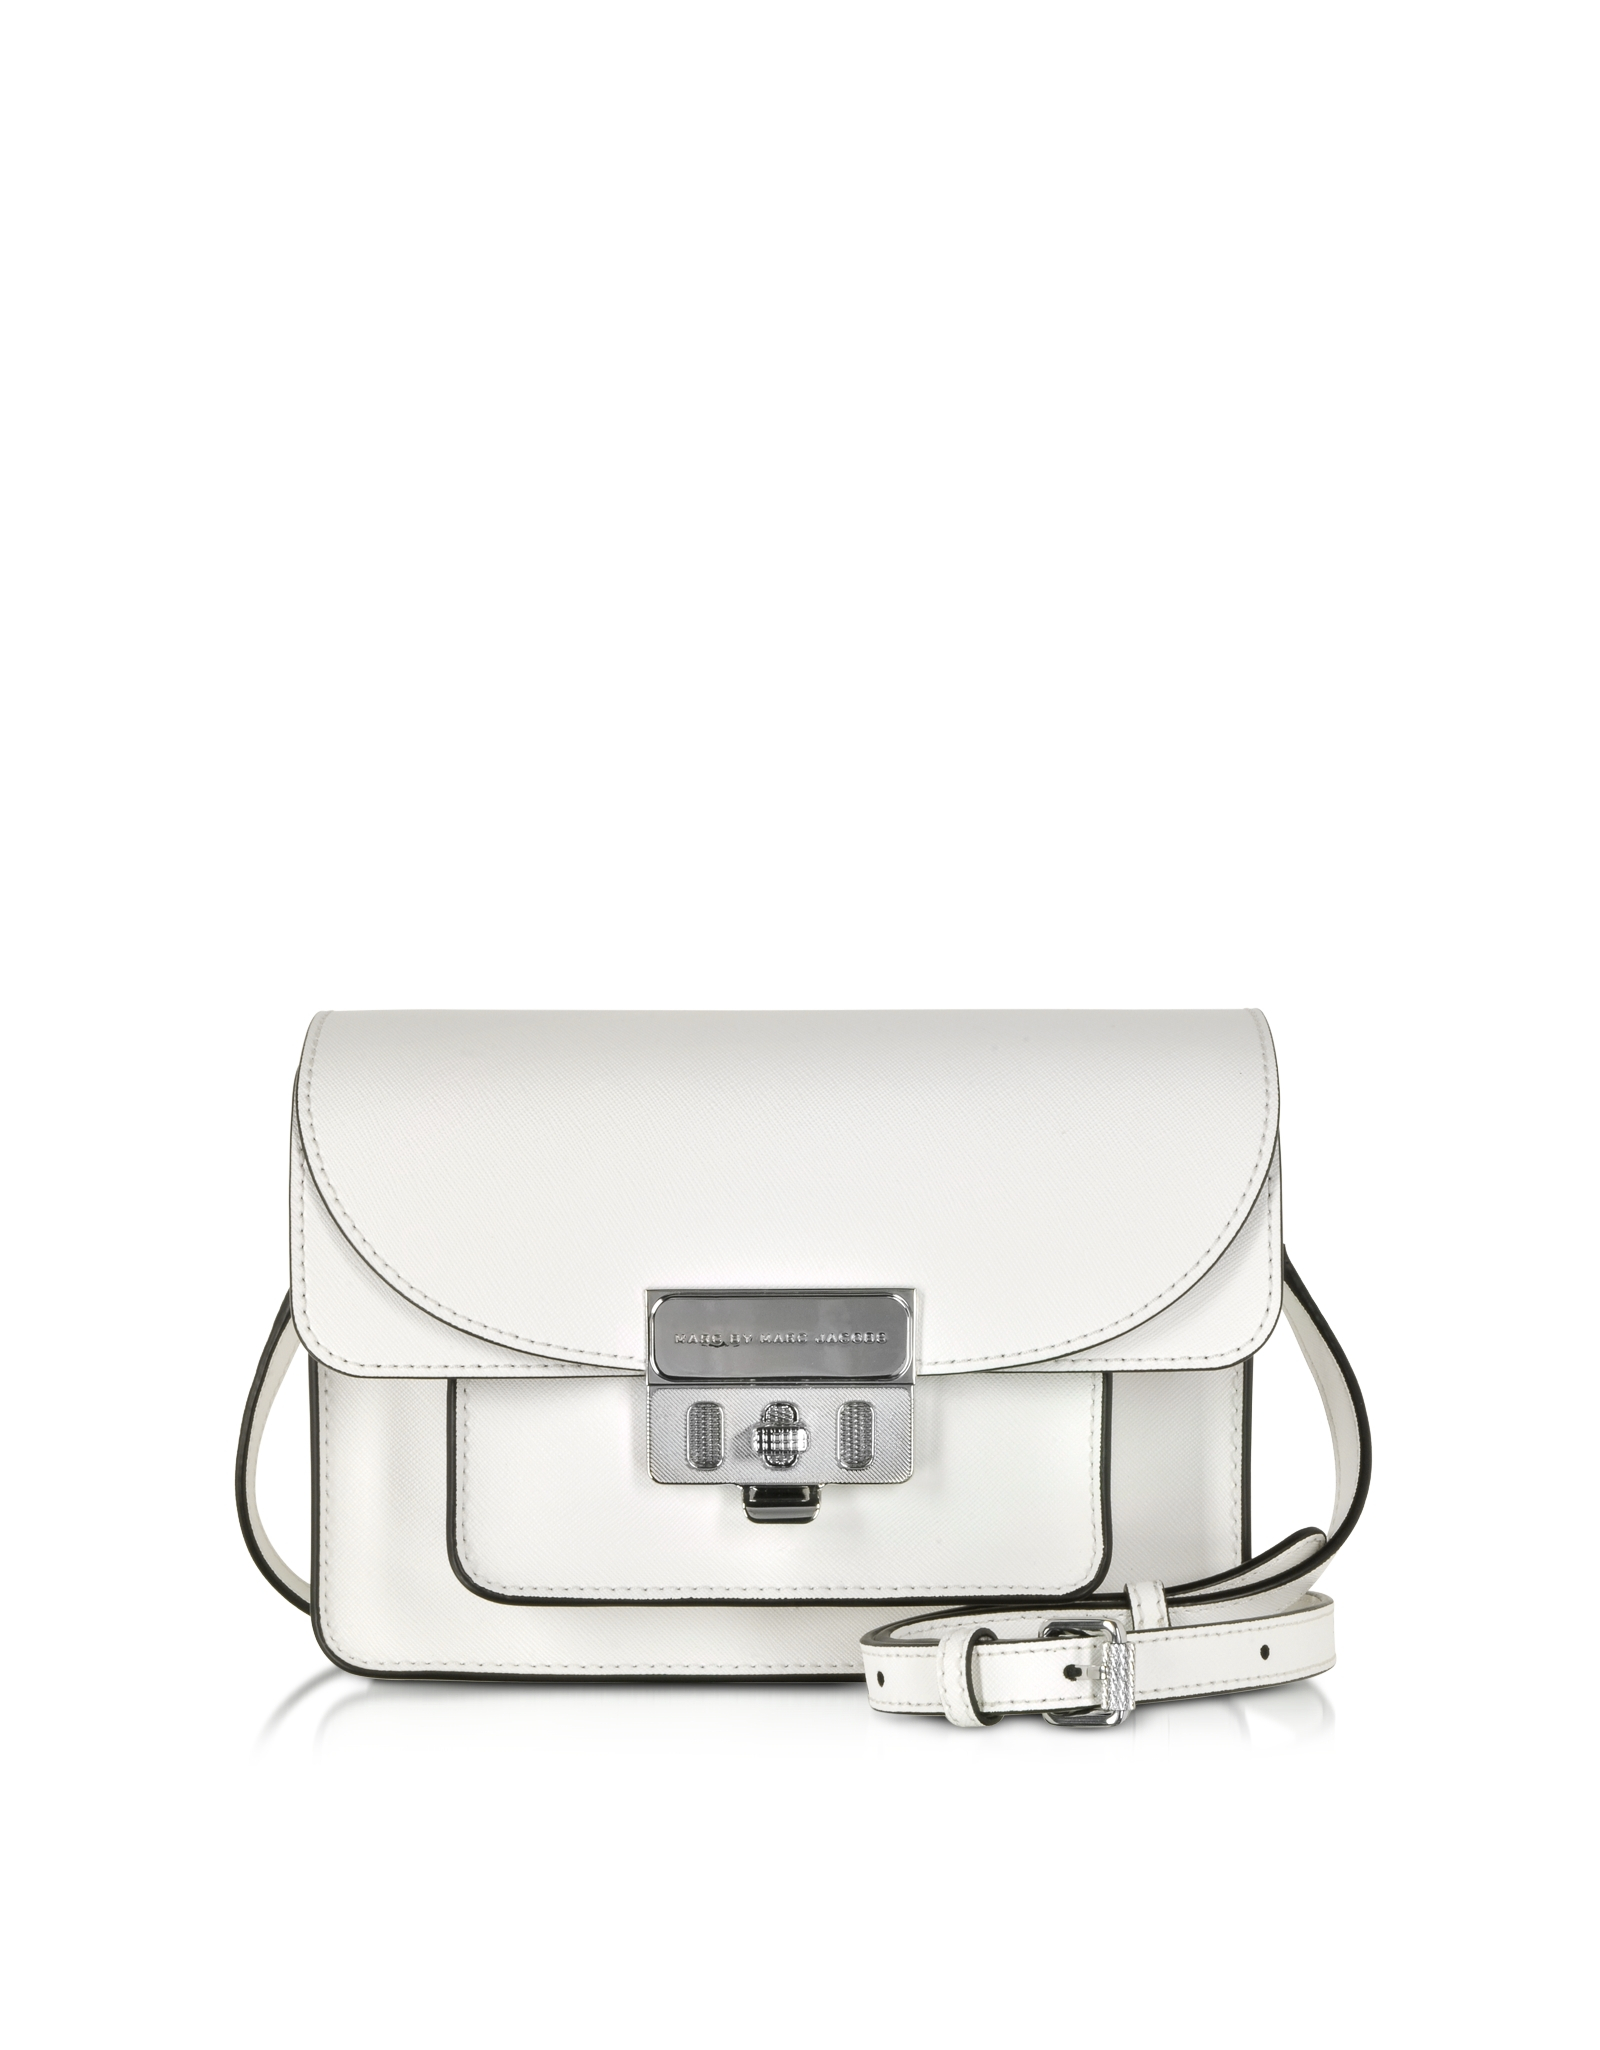 8034b71d92d Marc By Marc Jacobs Lip Lock Star White Xbody Bag in White - Lyst